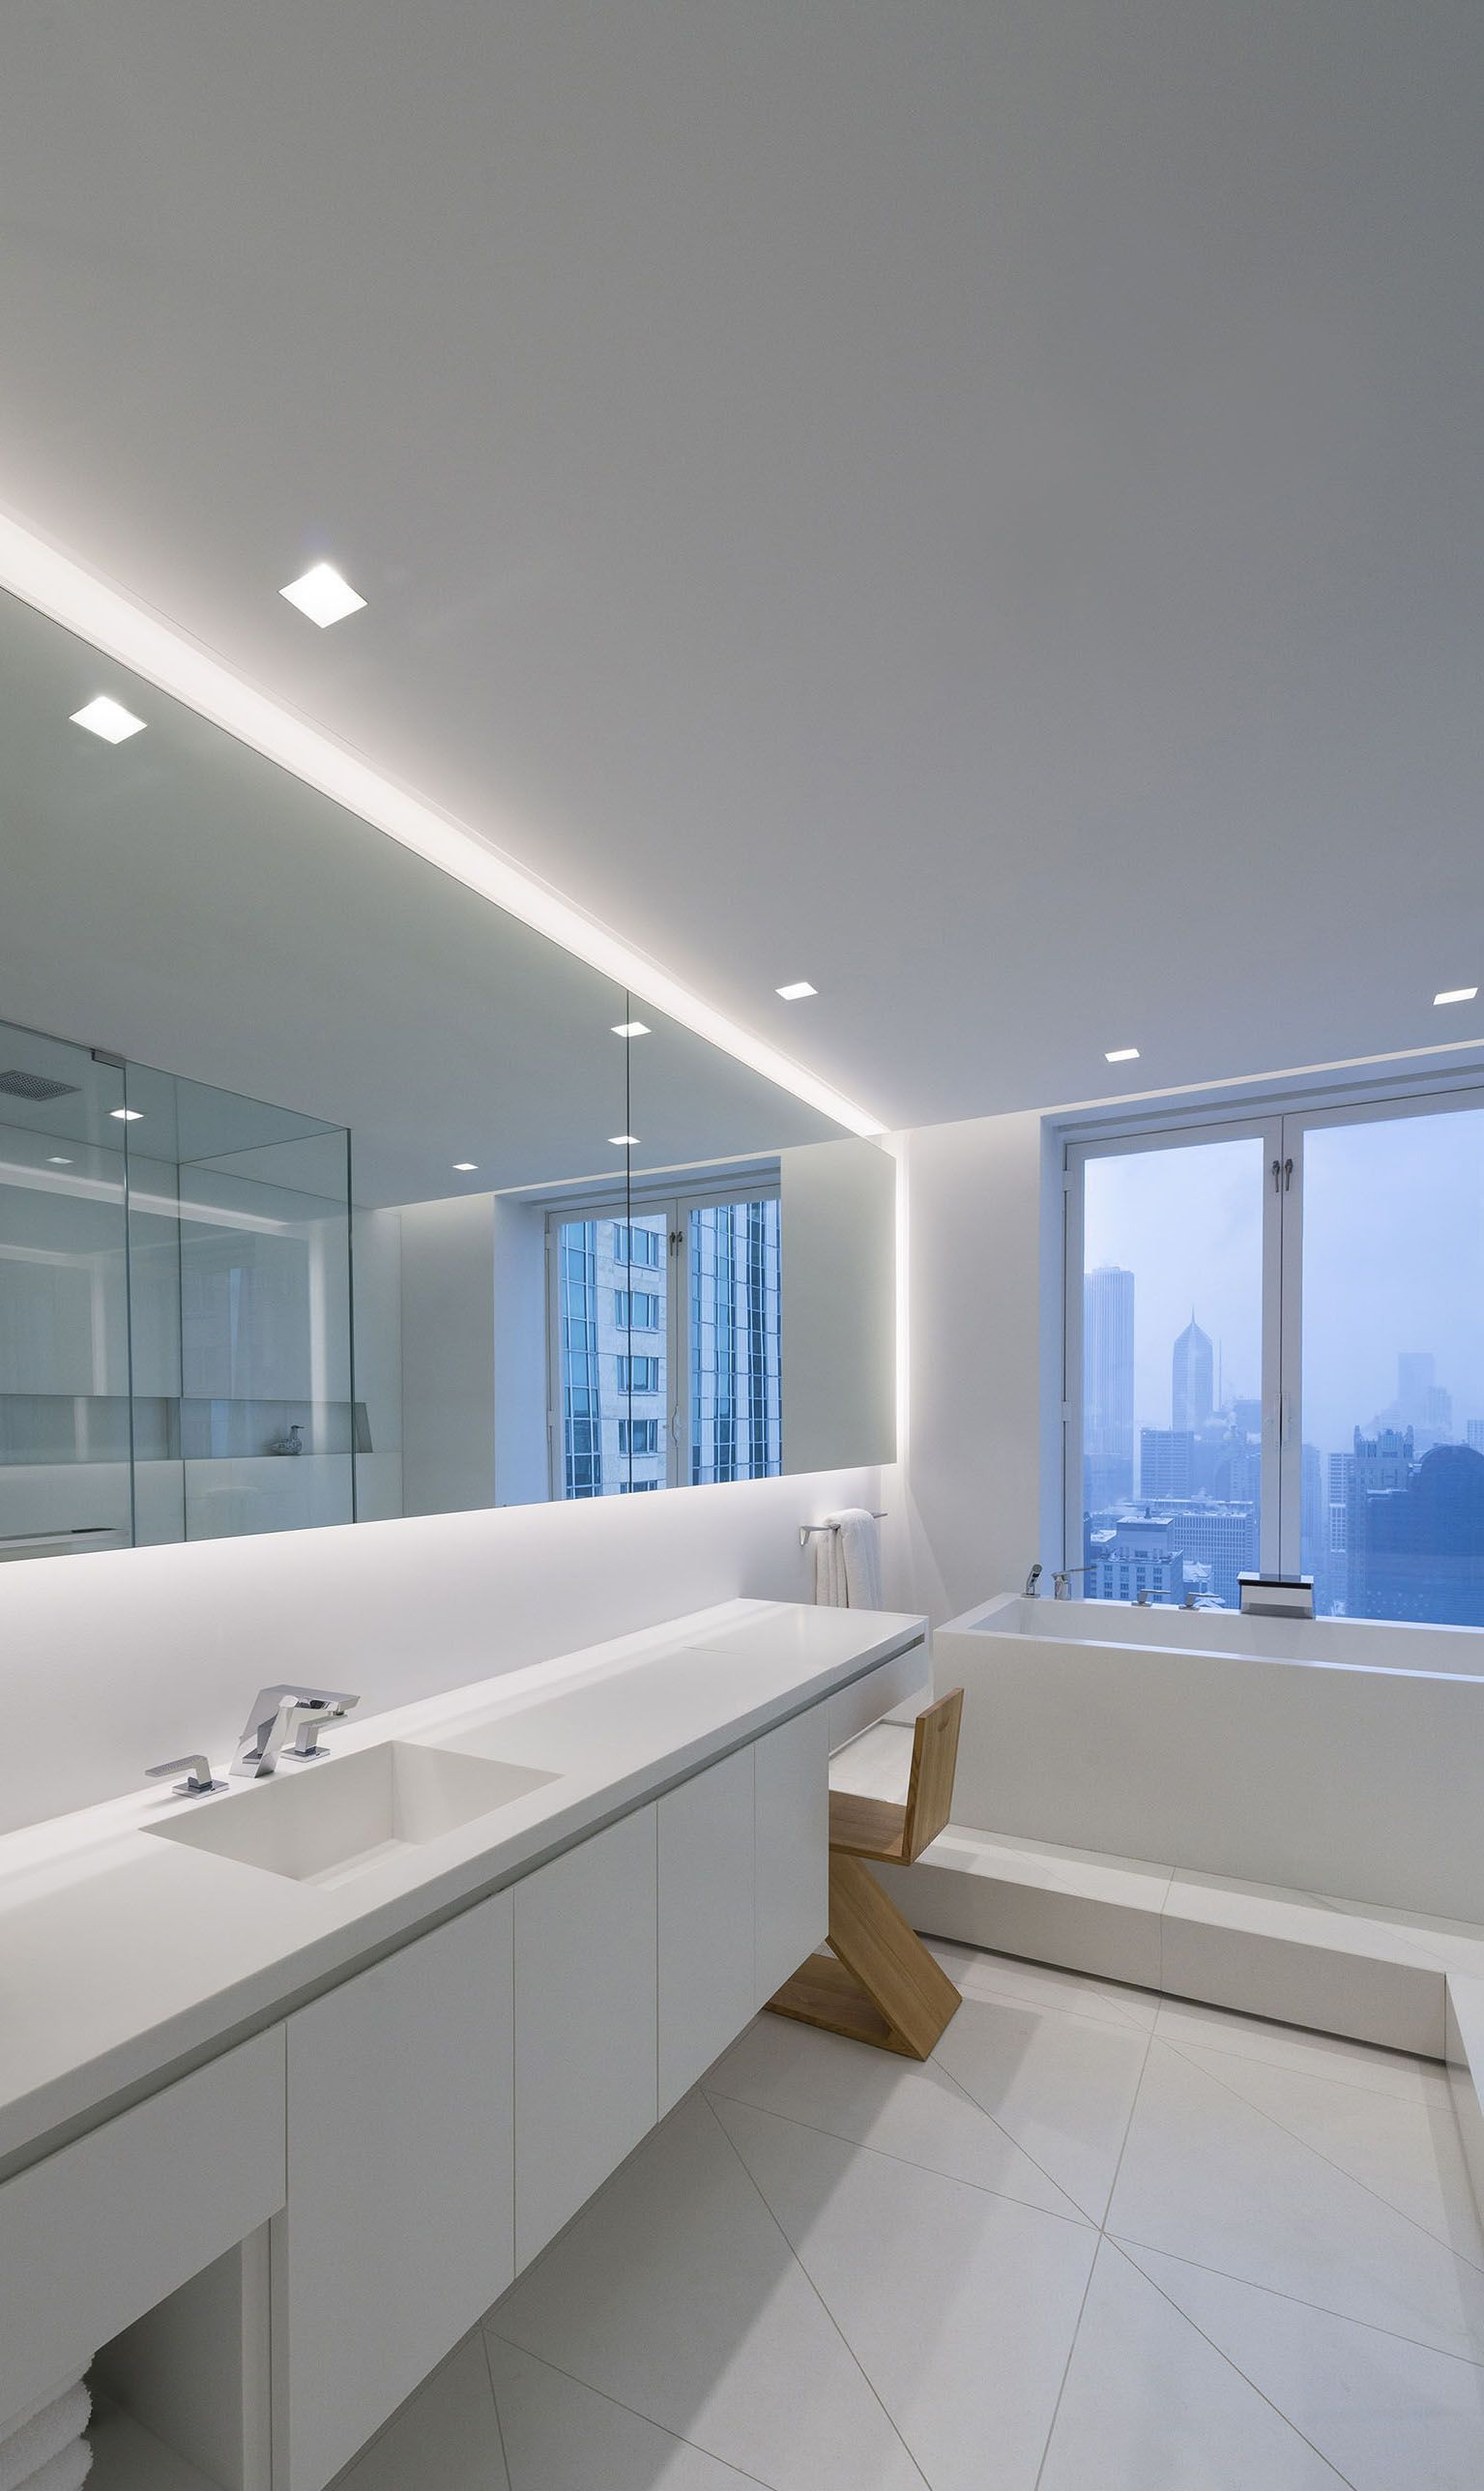 A Lighting Idea For Contempporary Bathrooms Modern Led Lighting For The Bathroom Aurora Square